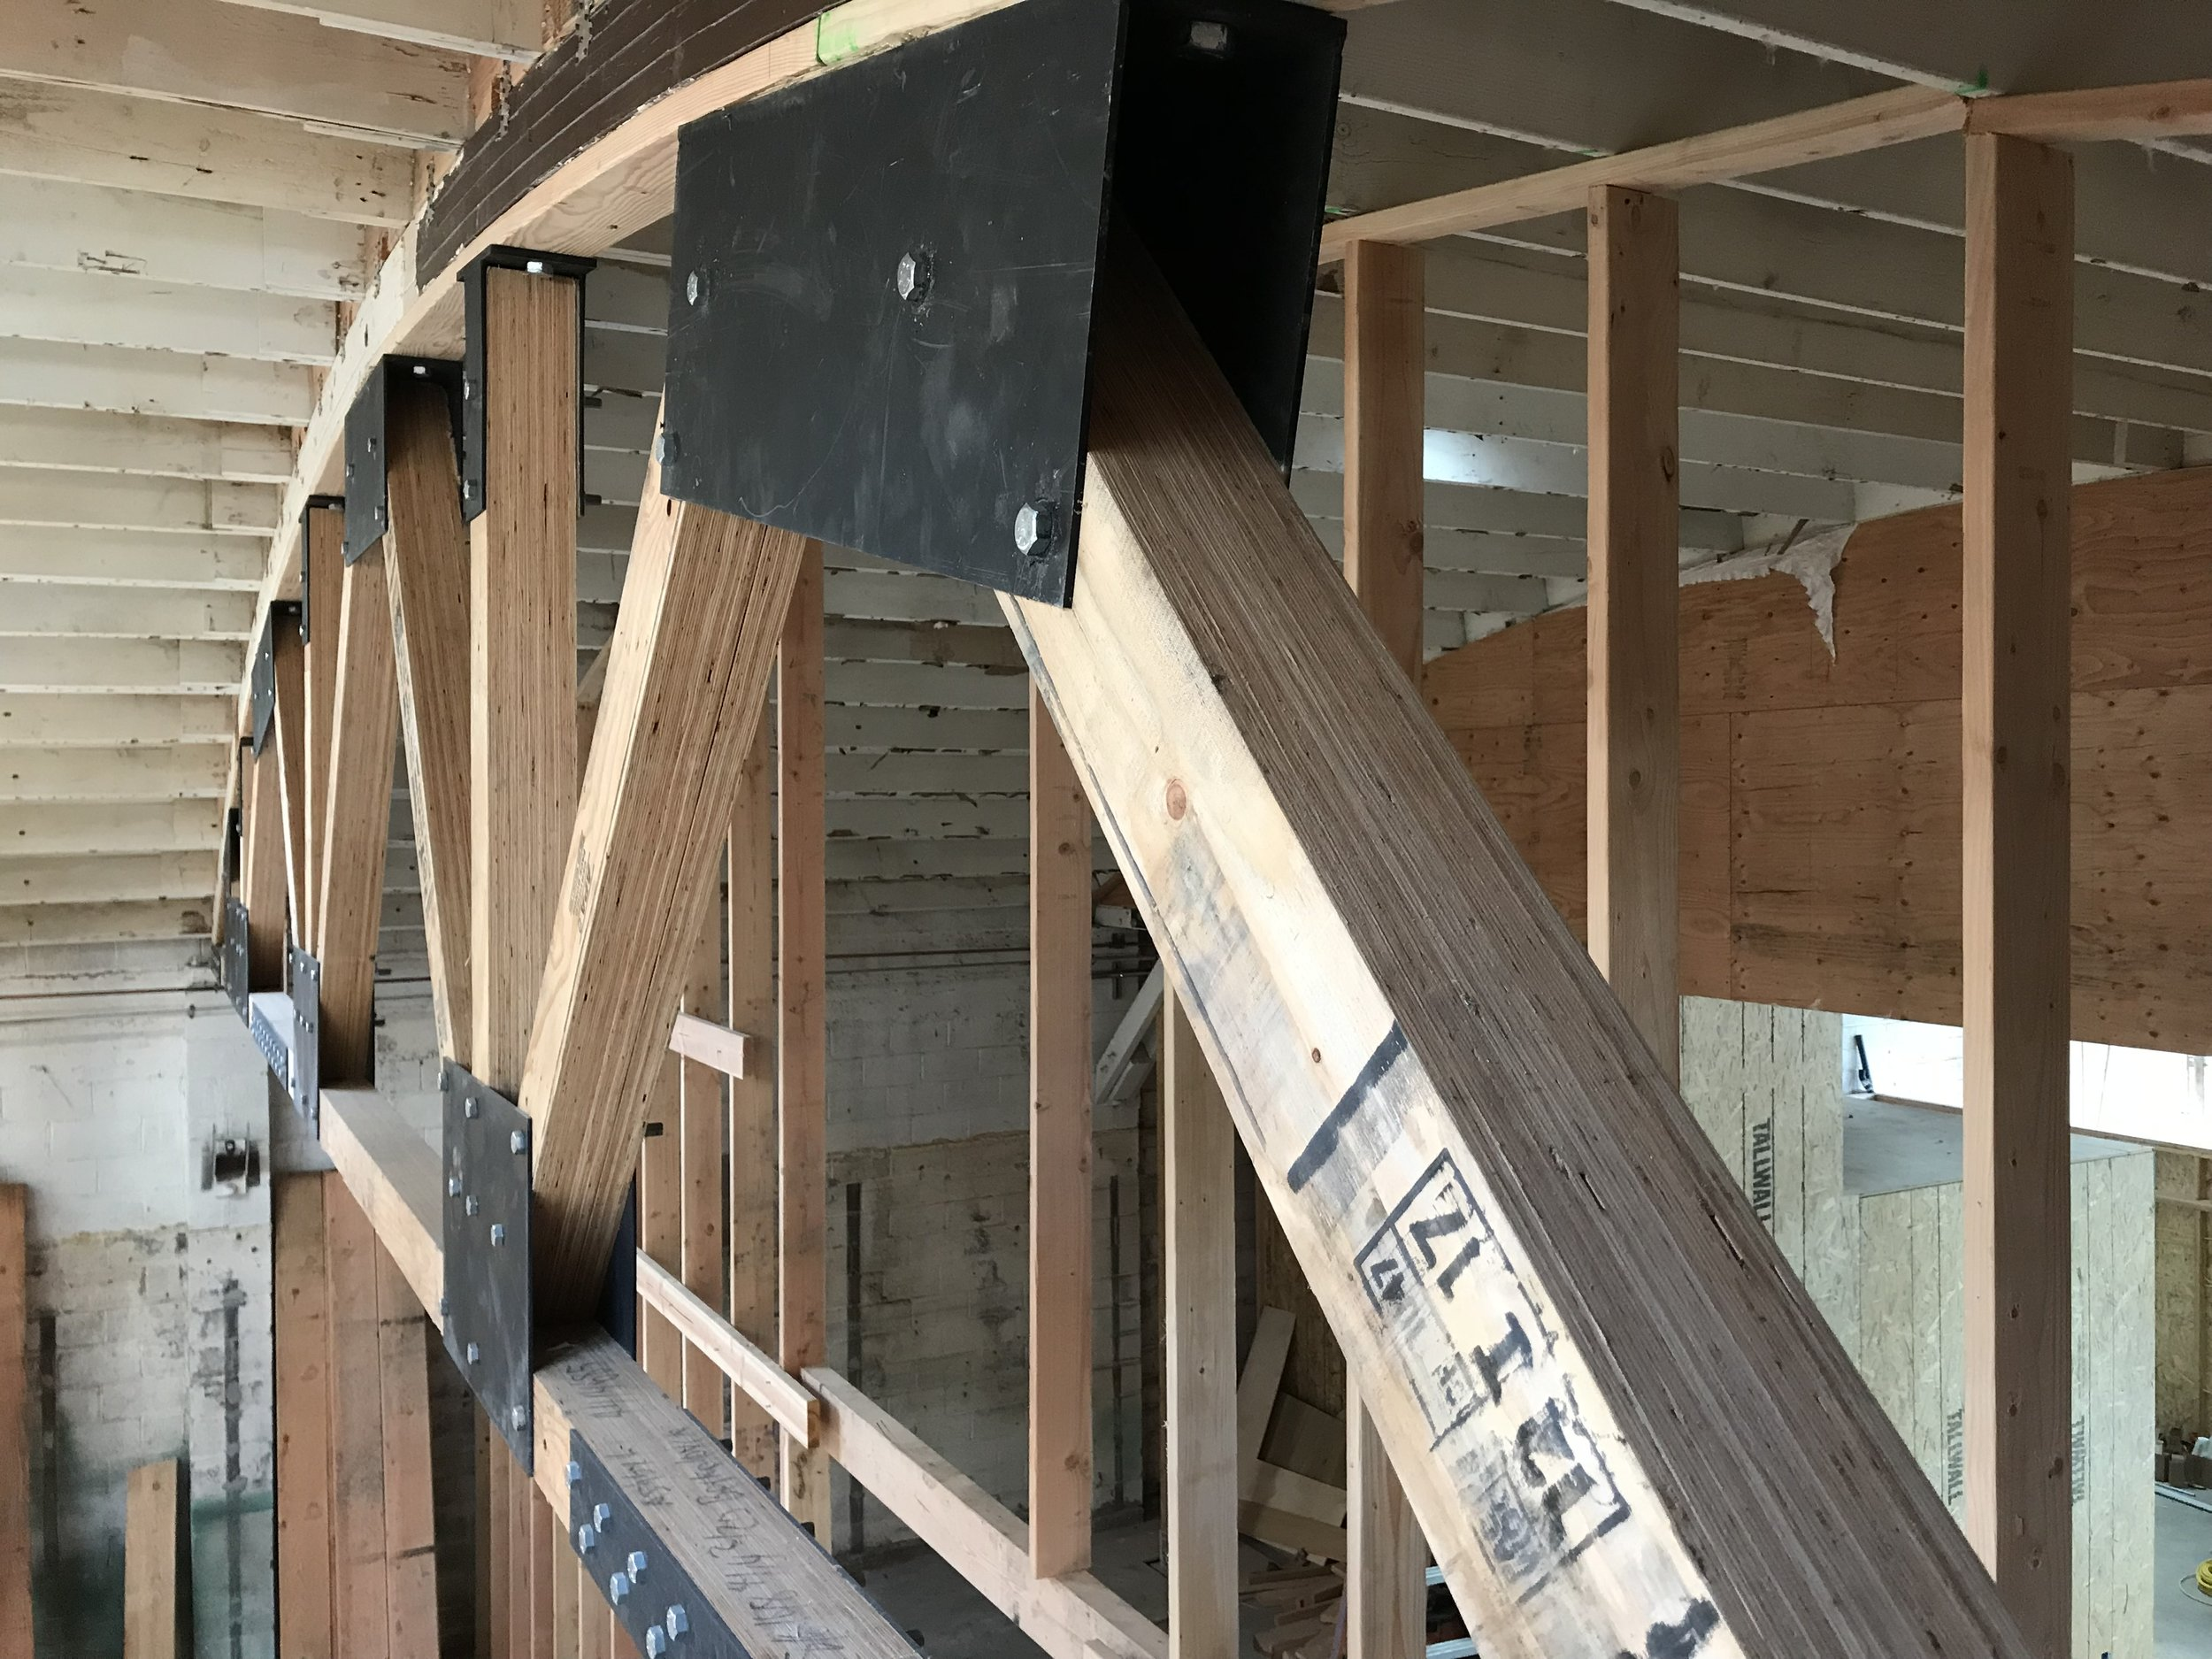 heavy metal joists and beams in the rafters at Mama Dog.